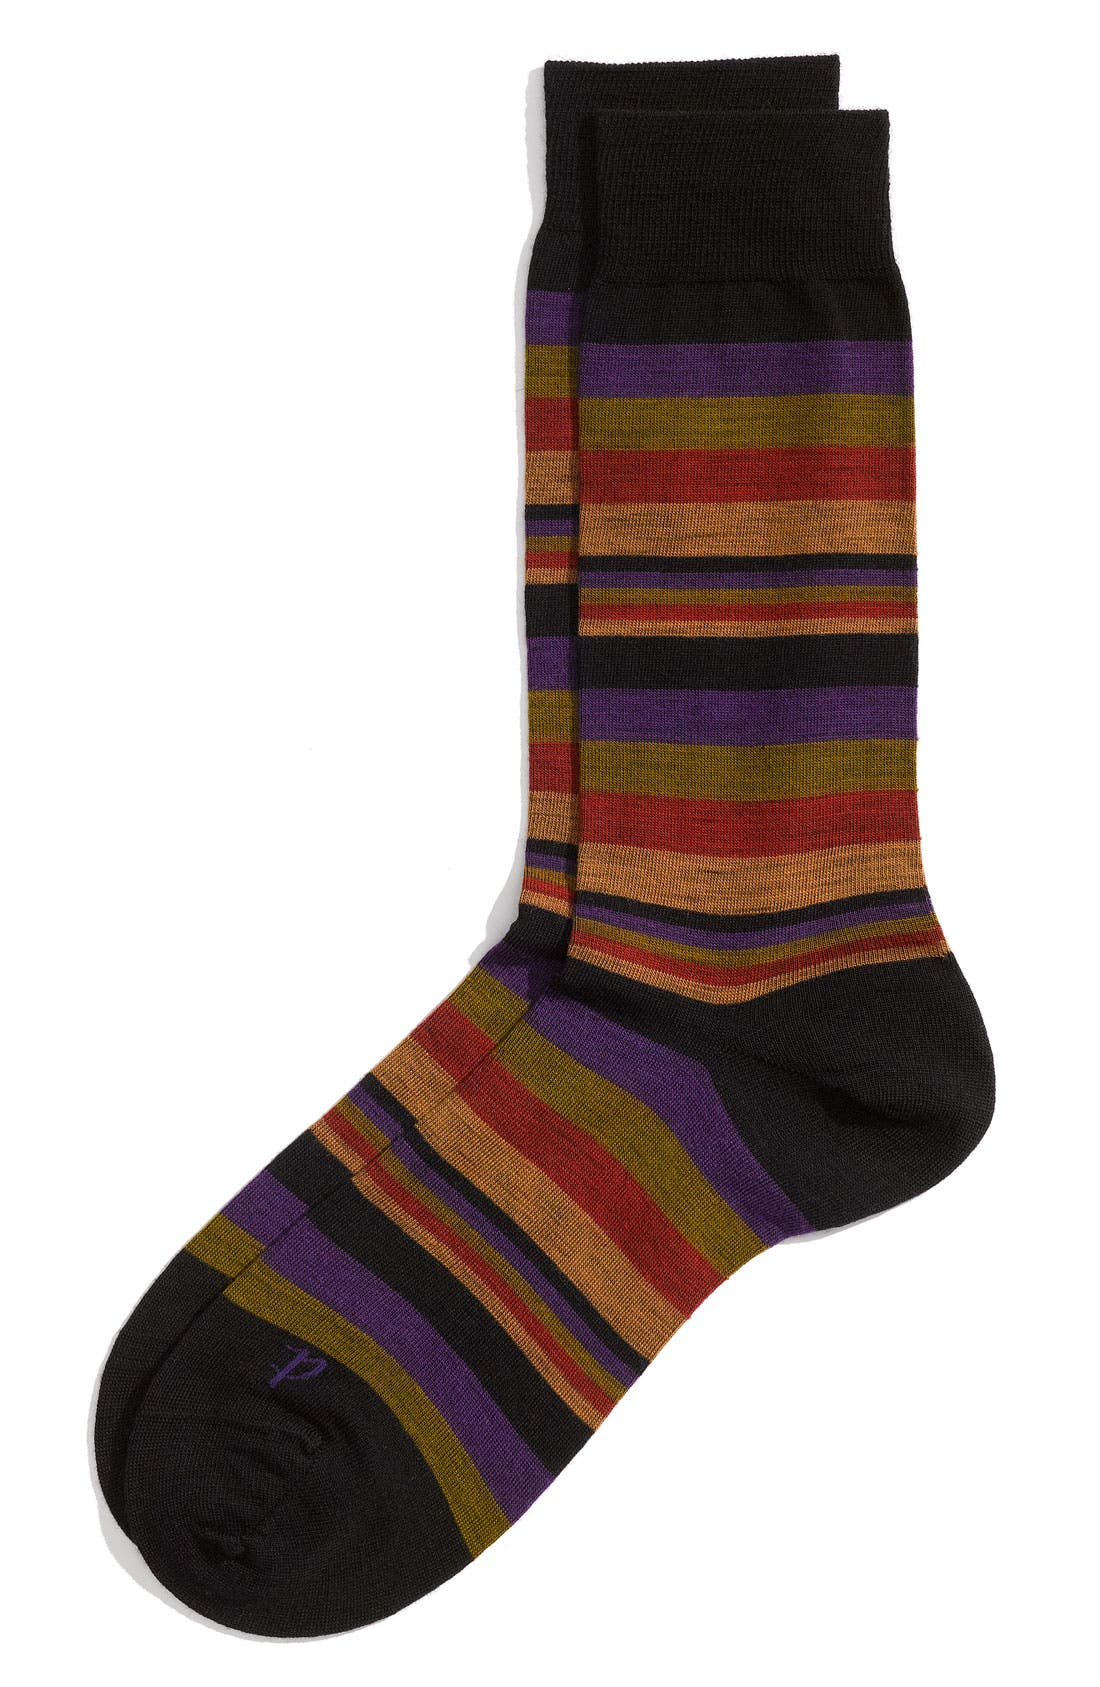 Alternate Image 1 Selected - Pantherella 'Aztec Stripe' Dress Socks